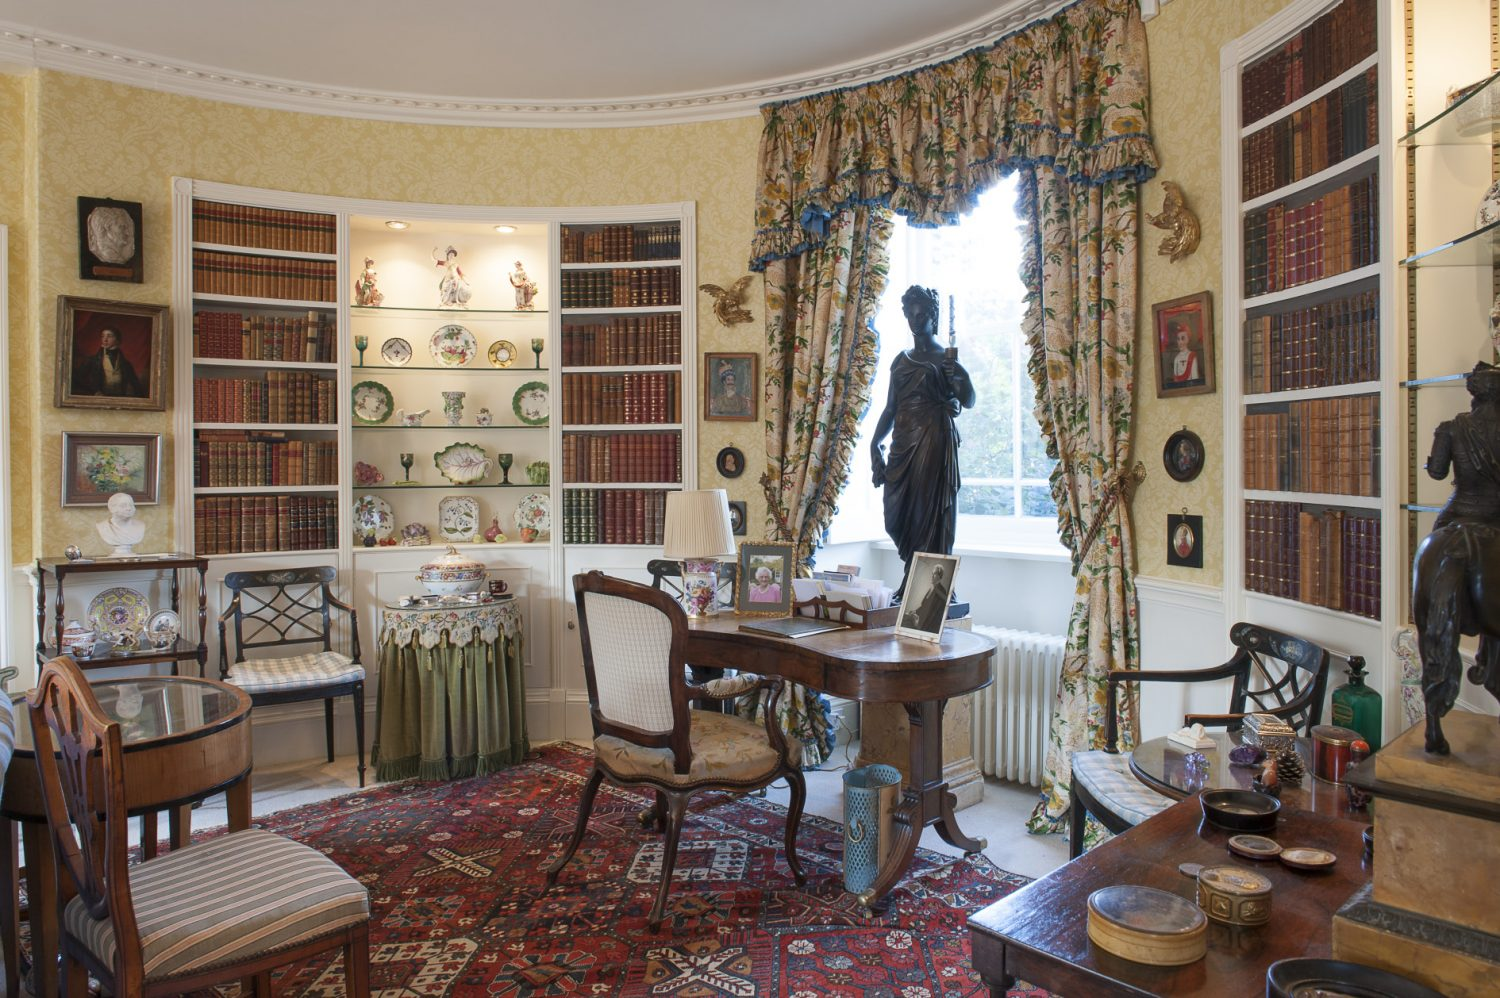 Today, the curved walls of the drawing room, created by a vicar in the nineteenth century, have bookshelves with hidden doors that silently open when pressed in the right spot